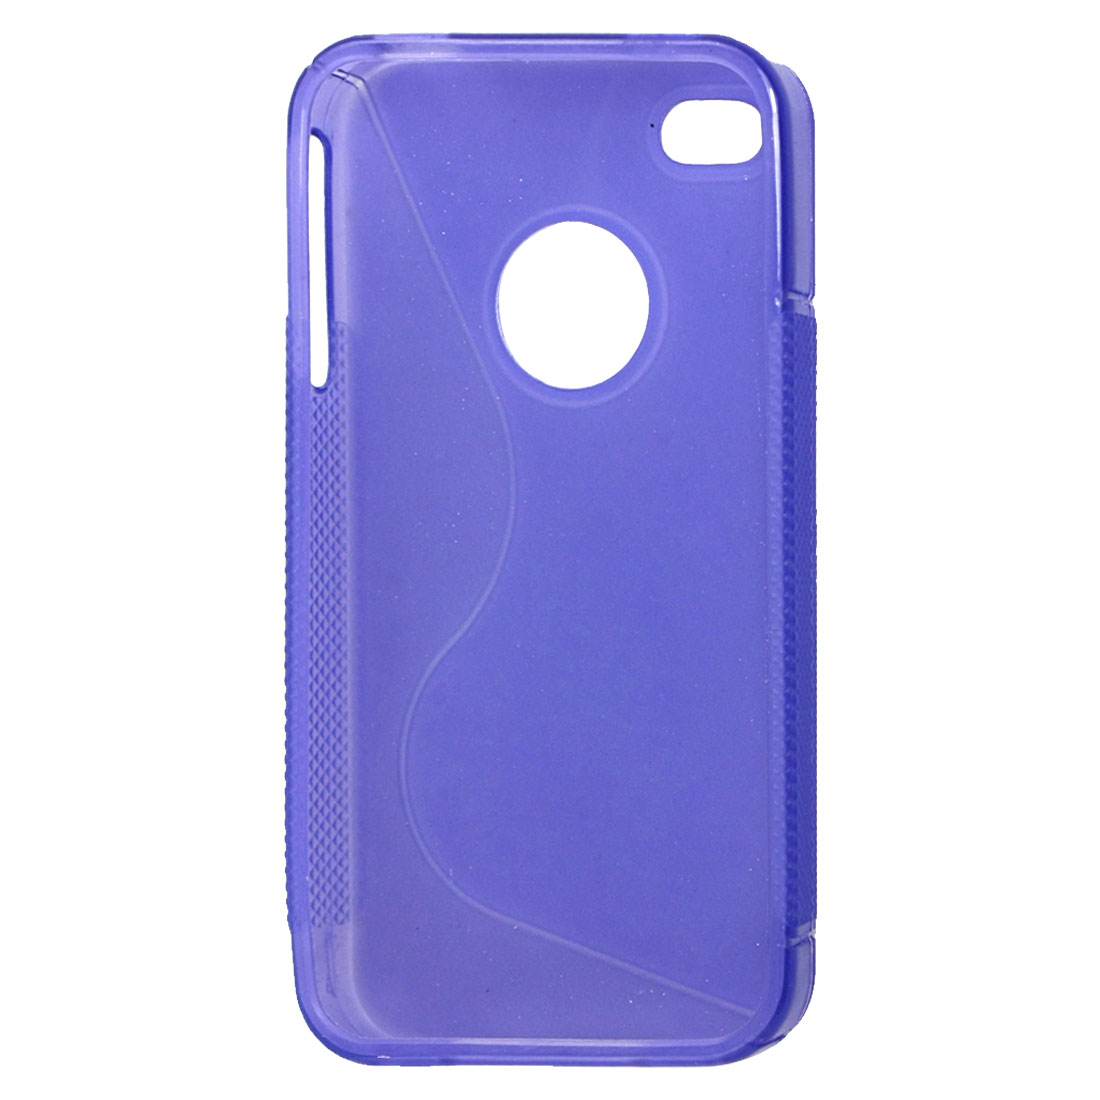 Nonslip Brim Soft Plastic Protective Case Purple for iPhone 4 4G 4S